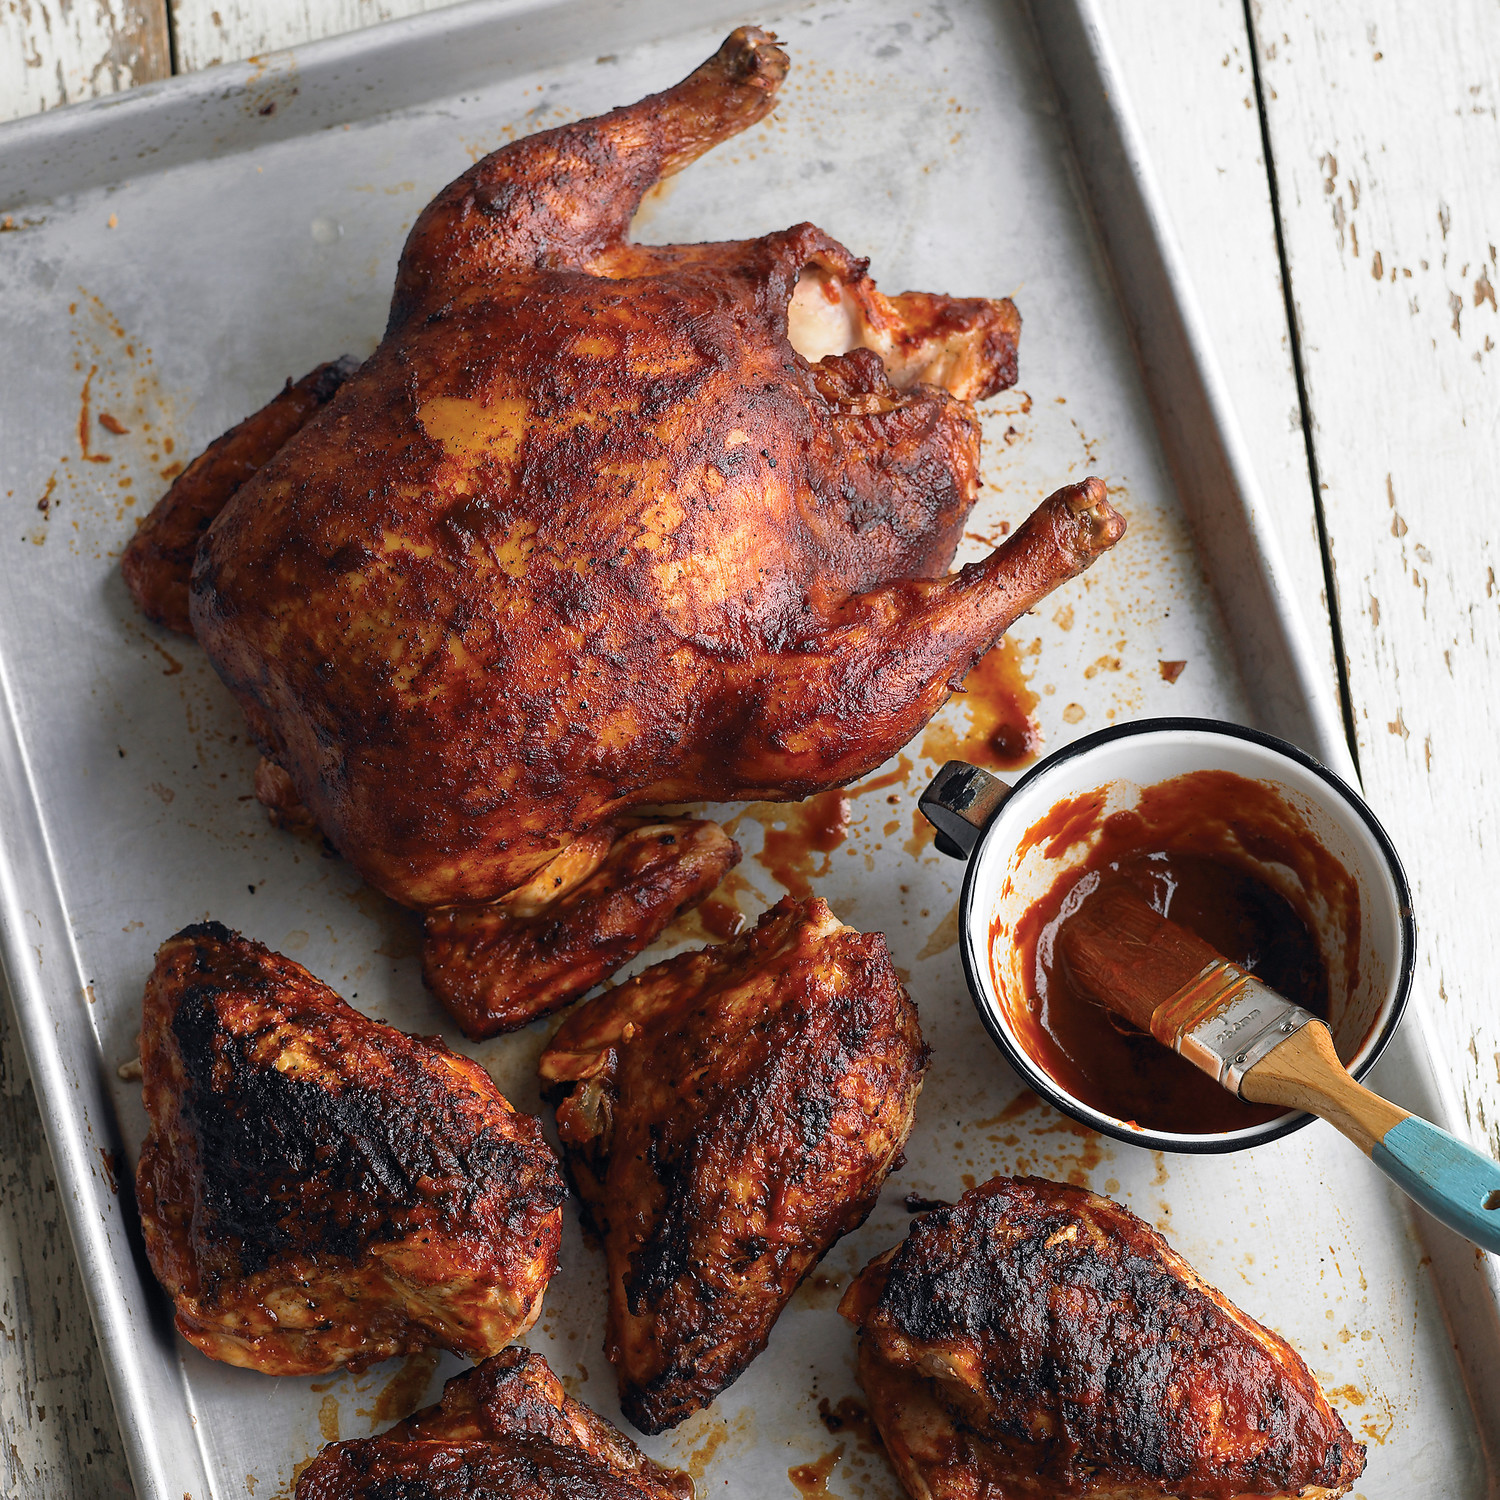 Grilled Whole Chicken With Barbecue Sauce